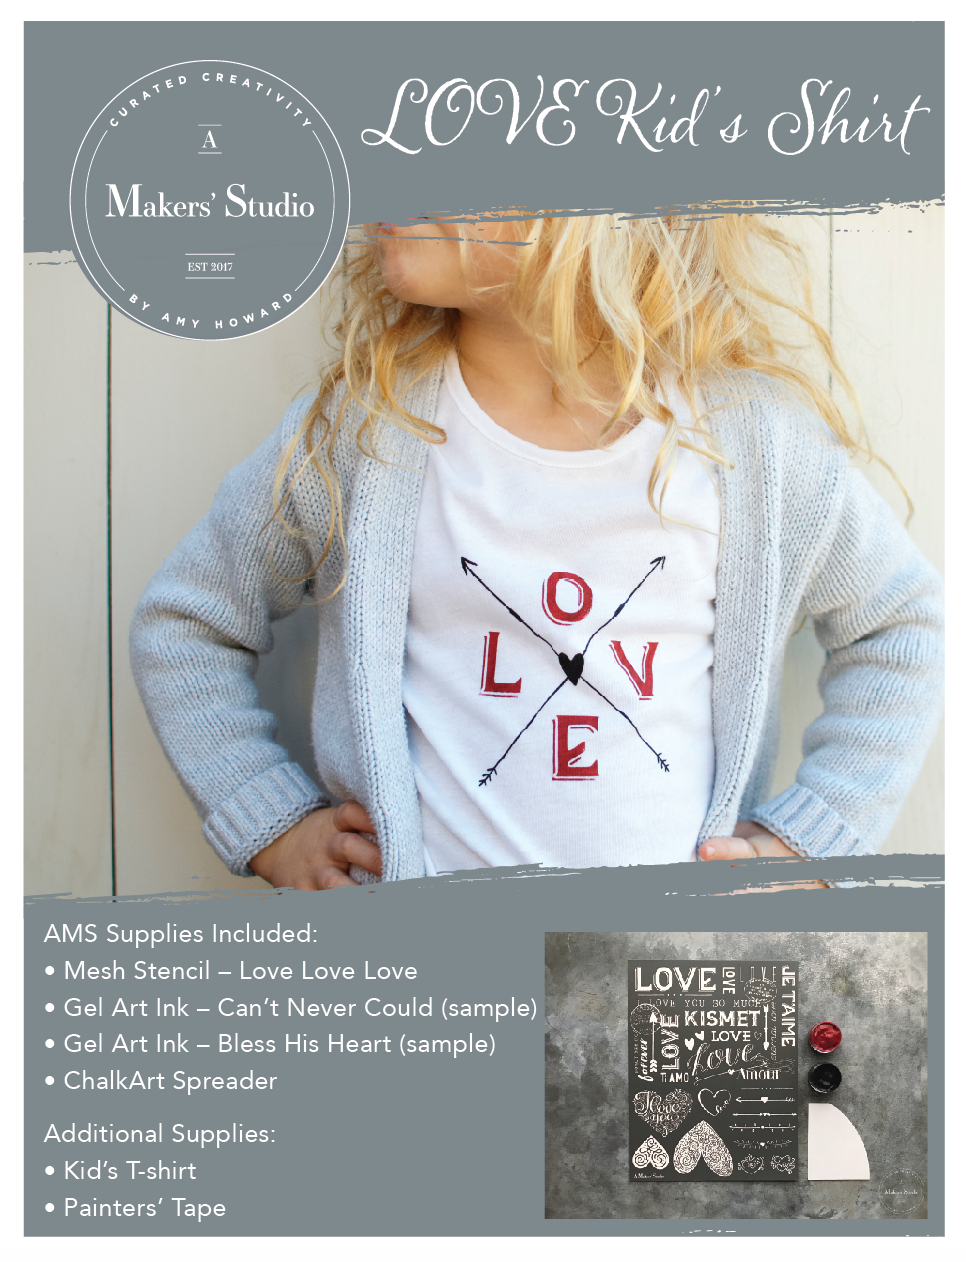 LOVE Kid's Shirt Kit